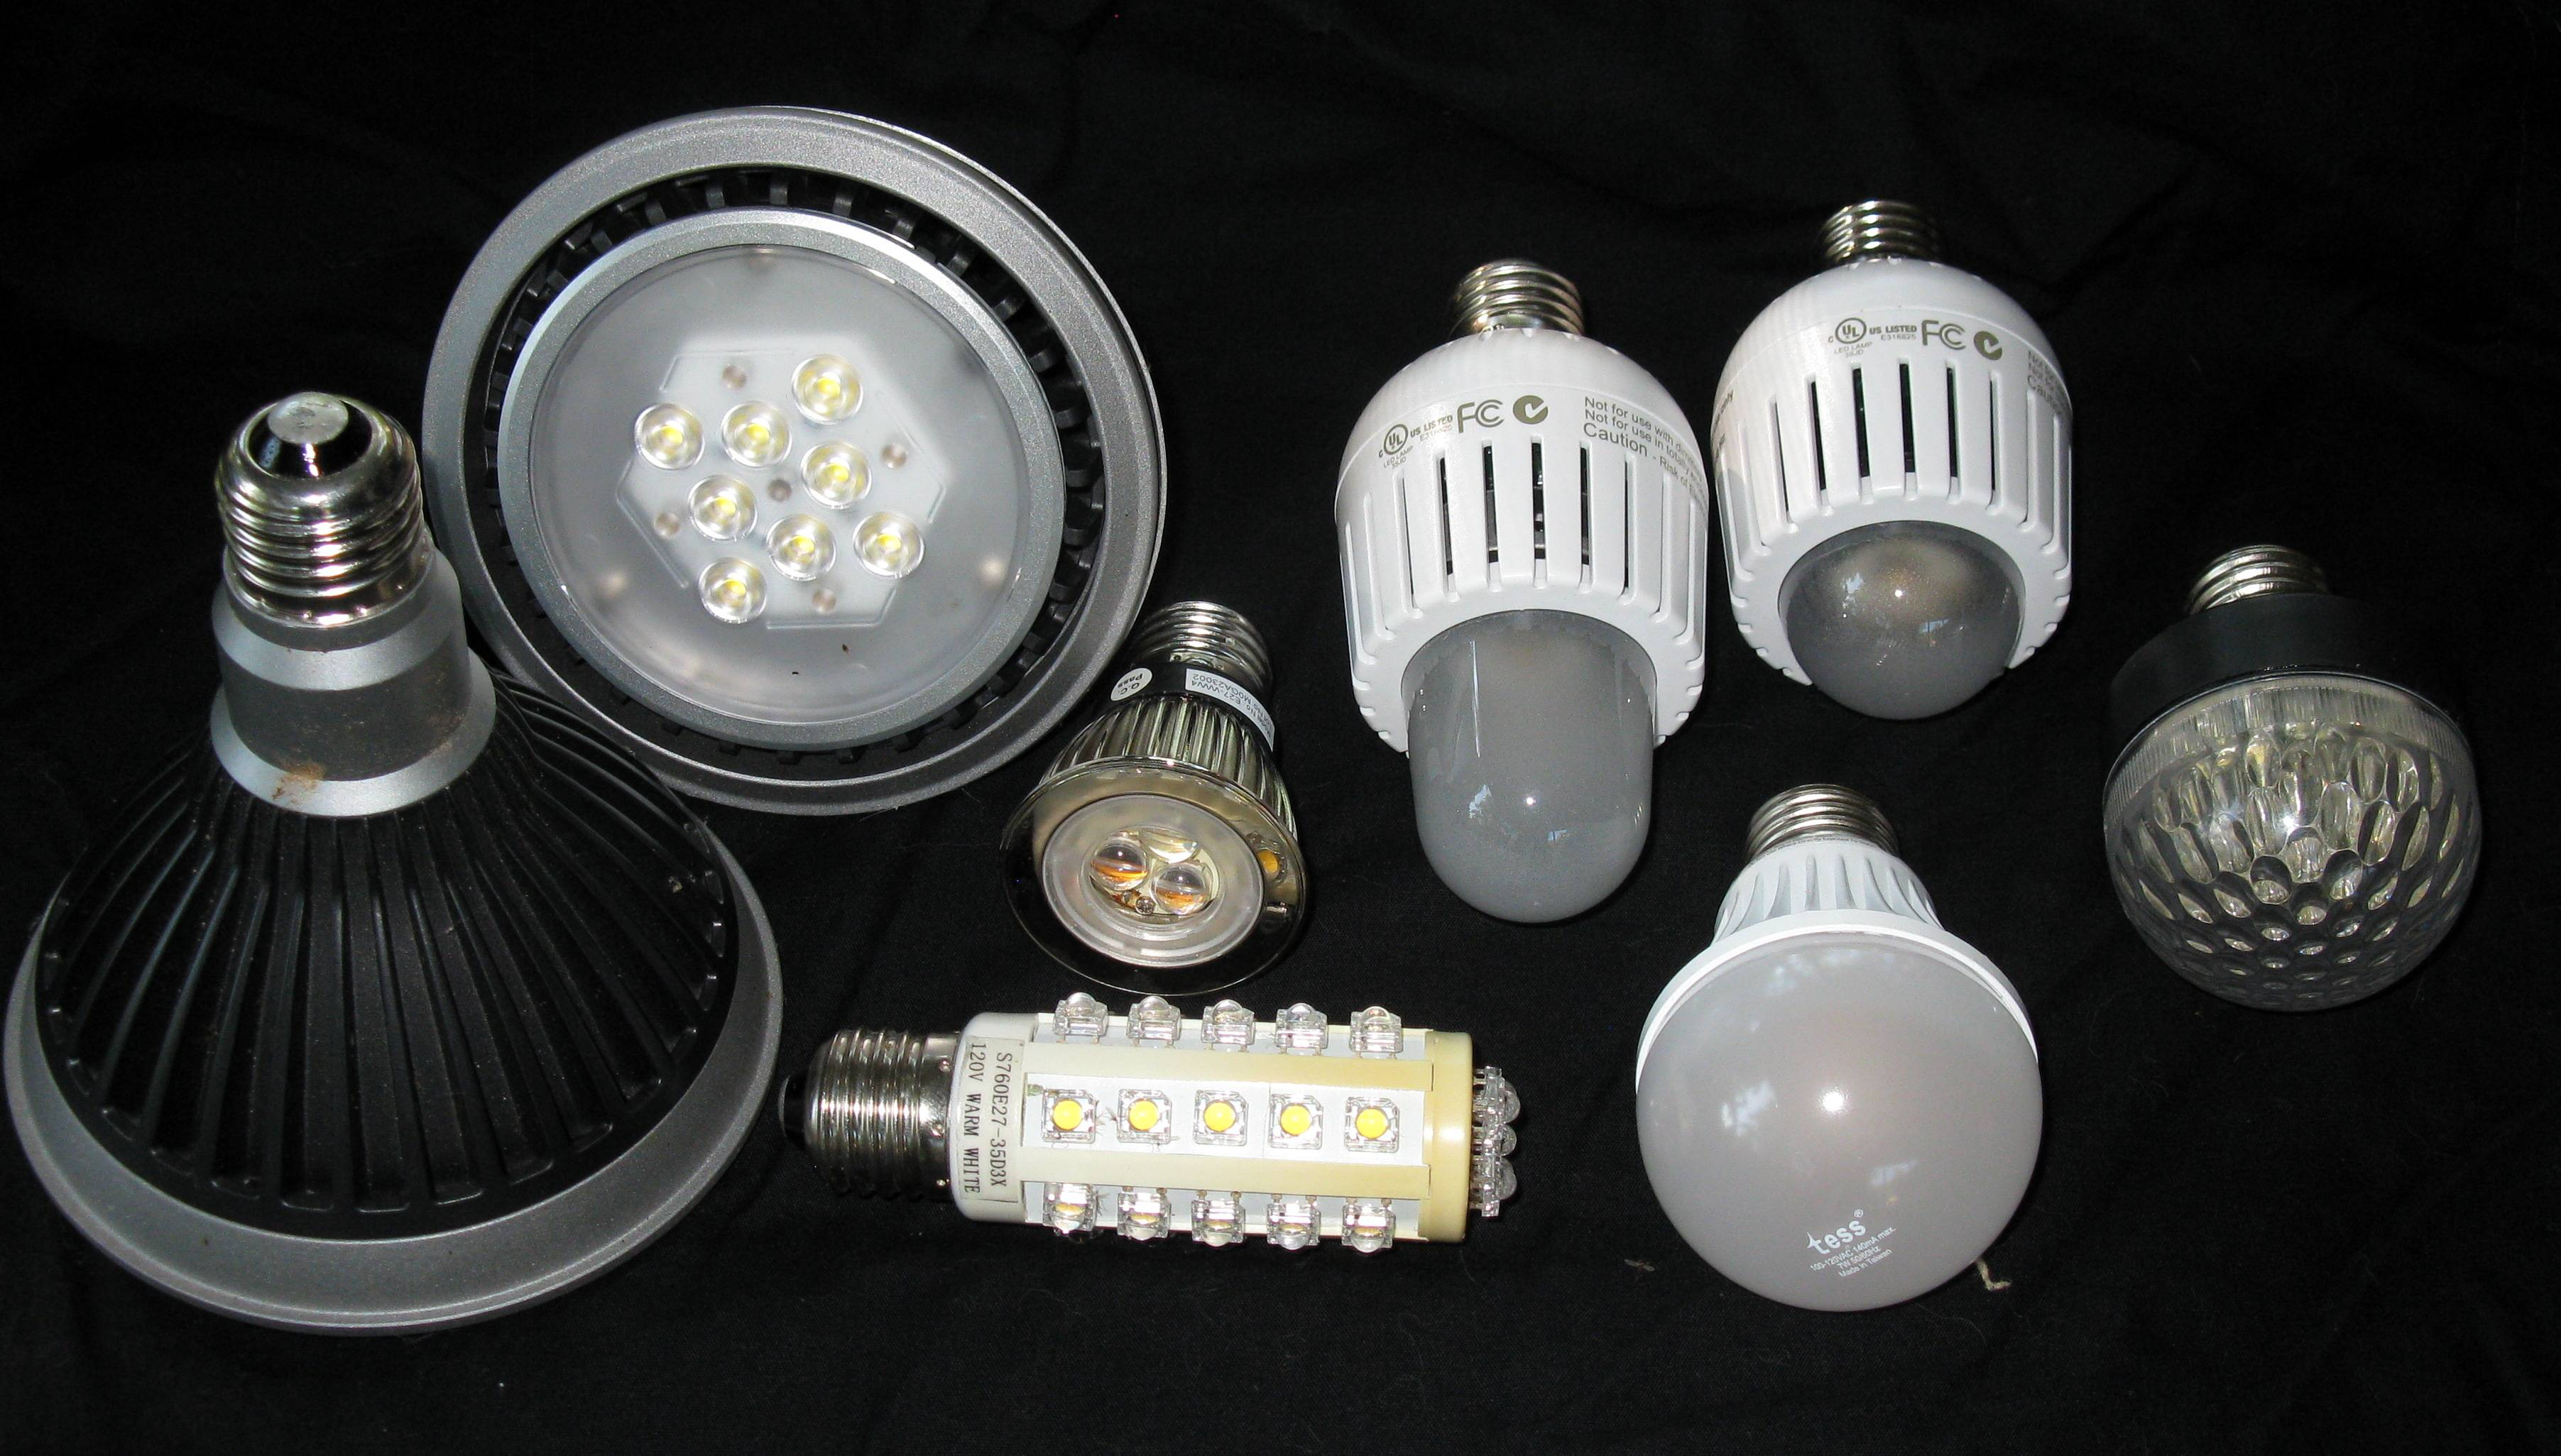 About LED – Part One